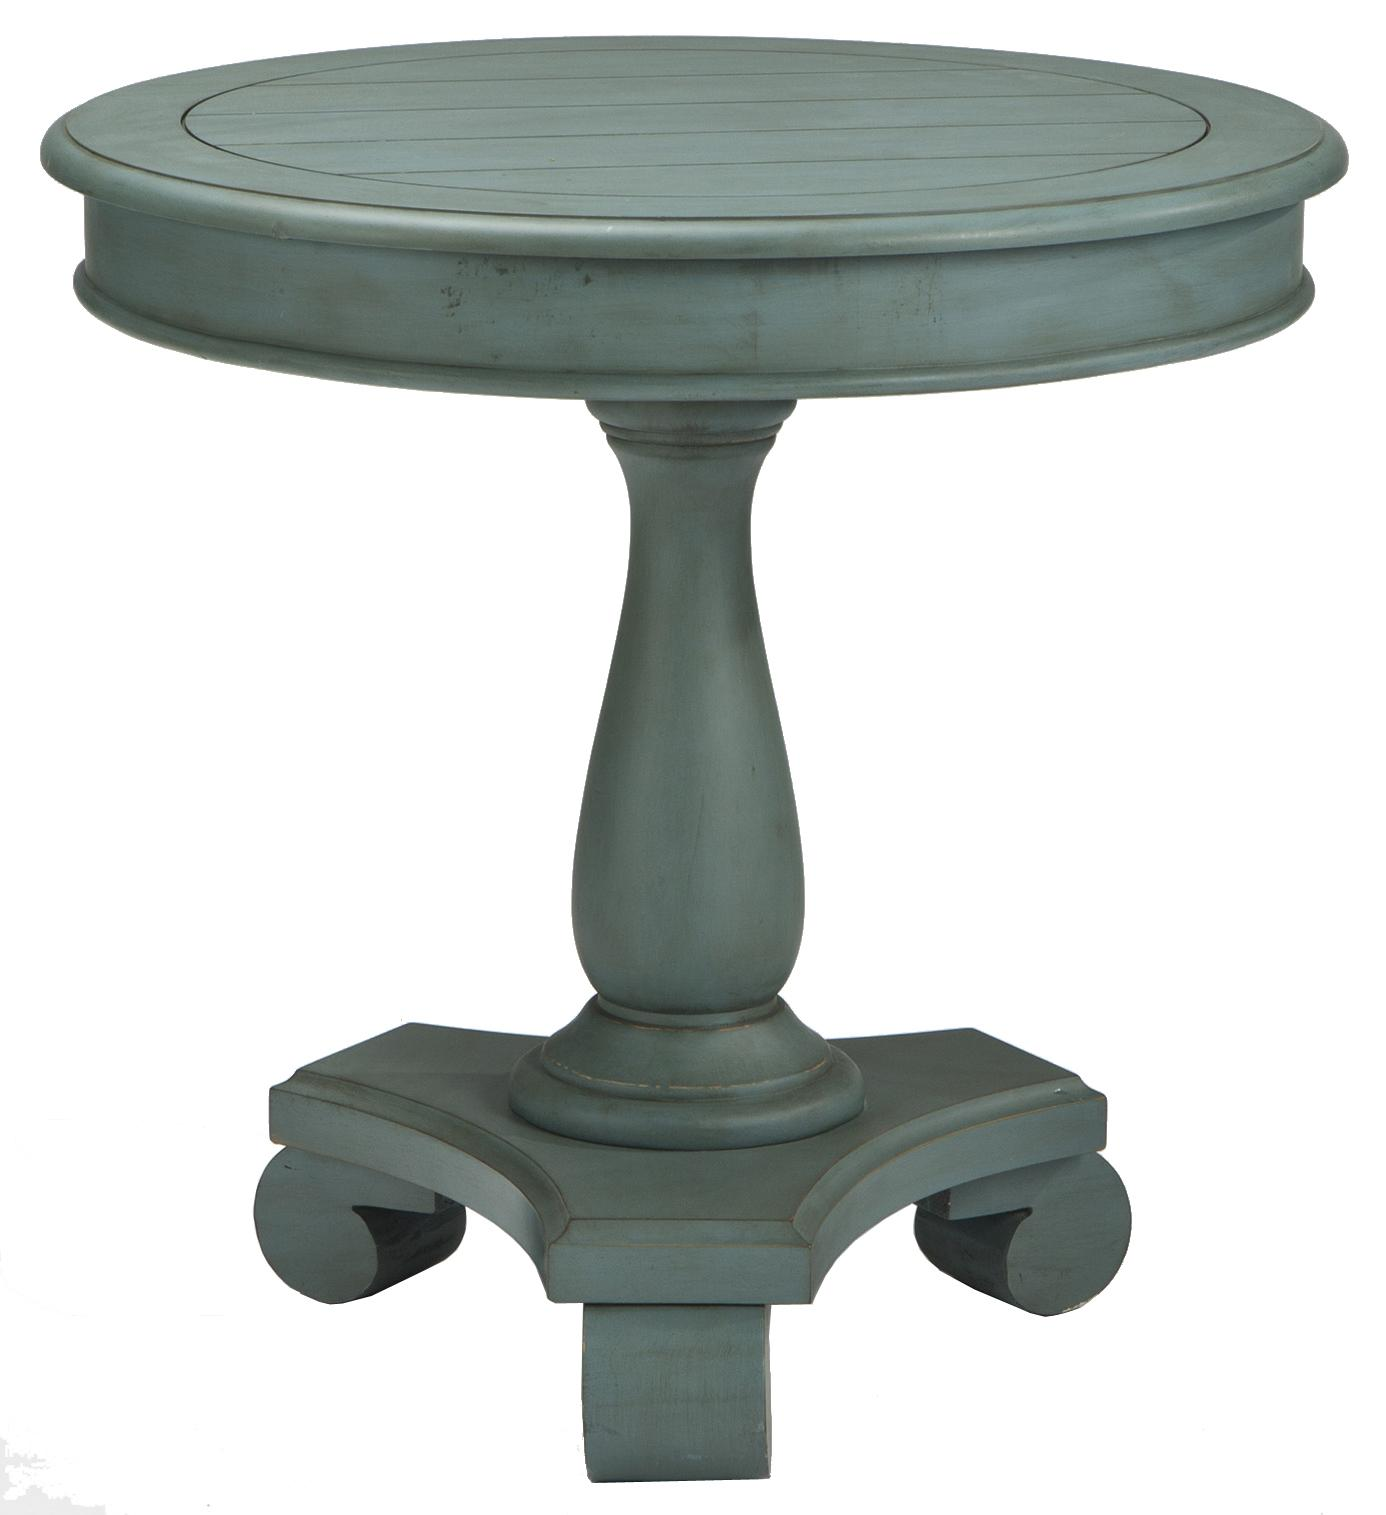 Signature Design by Ashley Mirimyn Round Accent Table - Item Number: T505-306